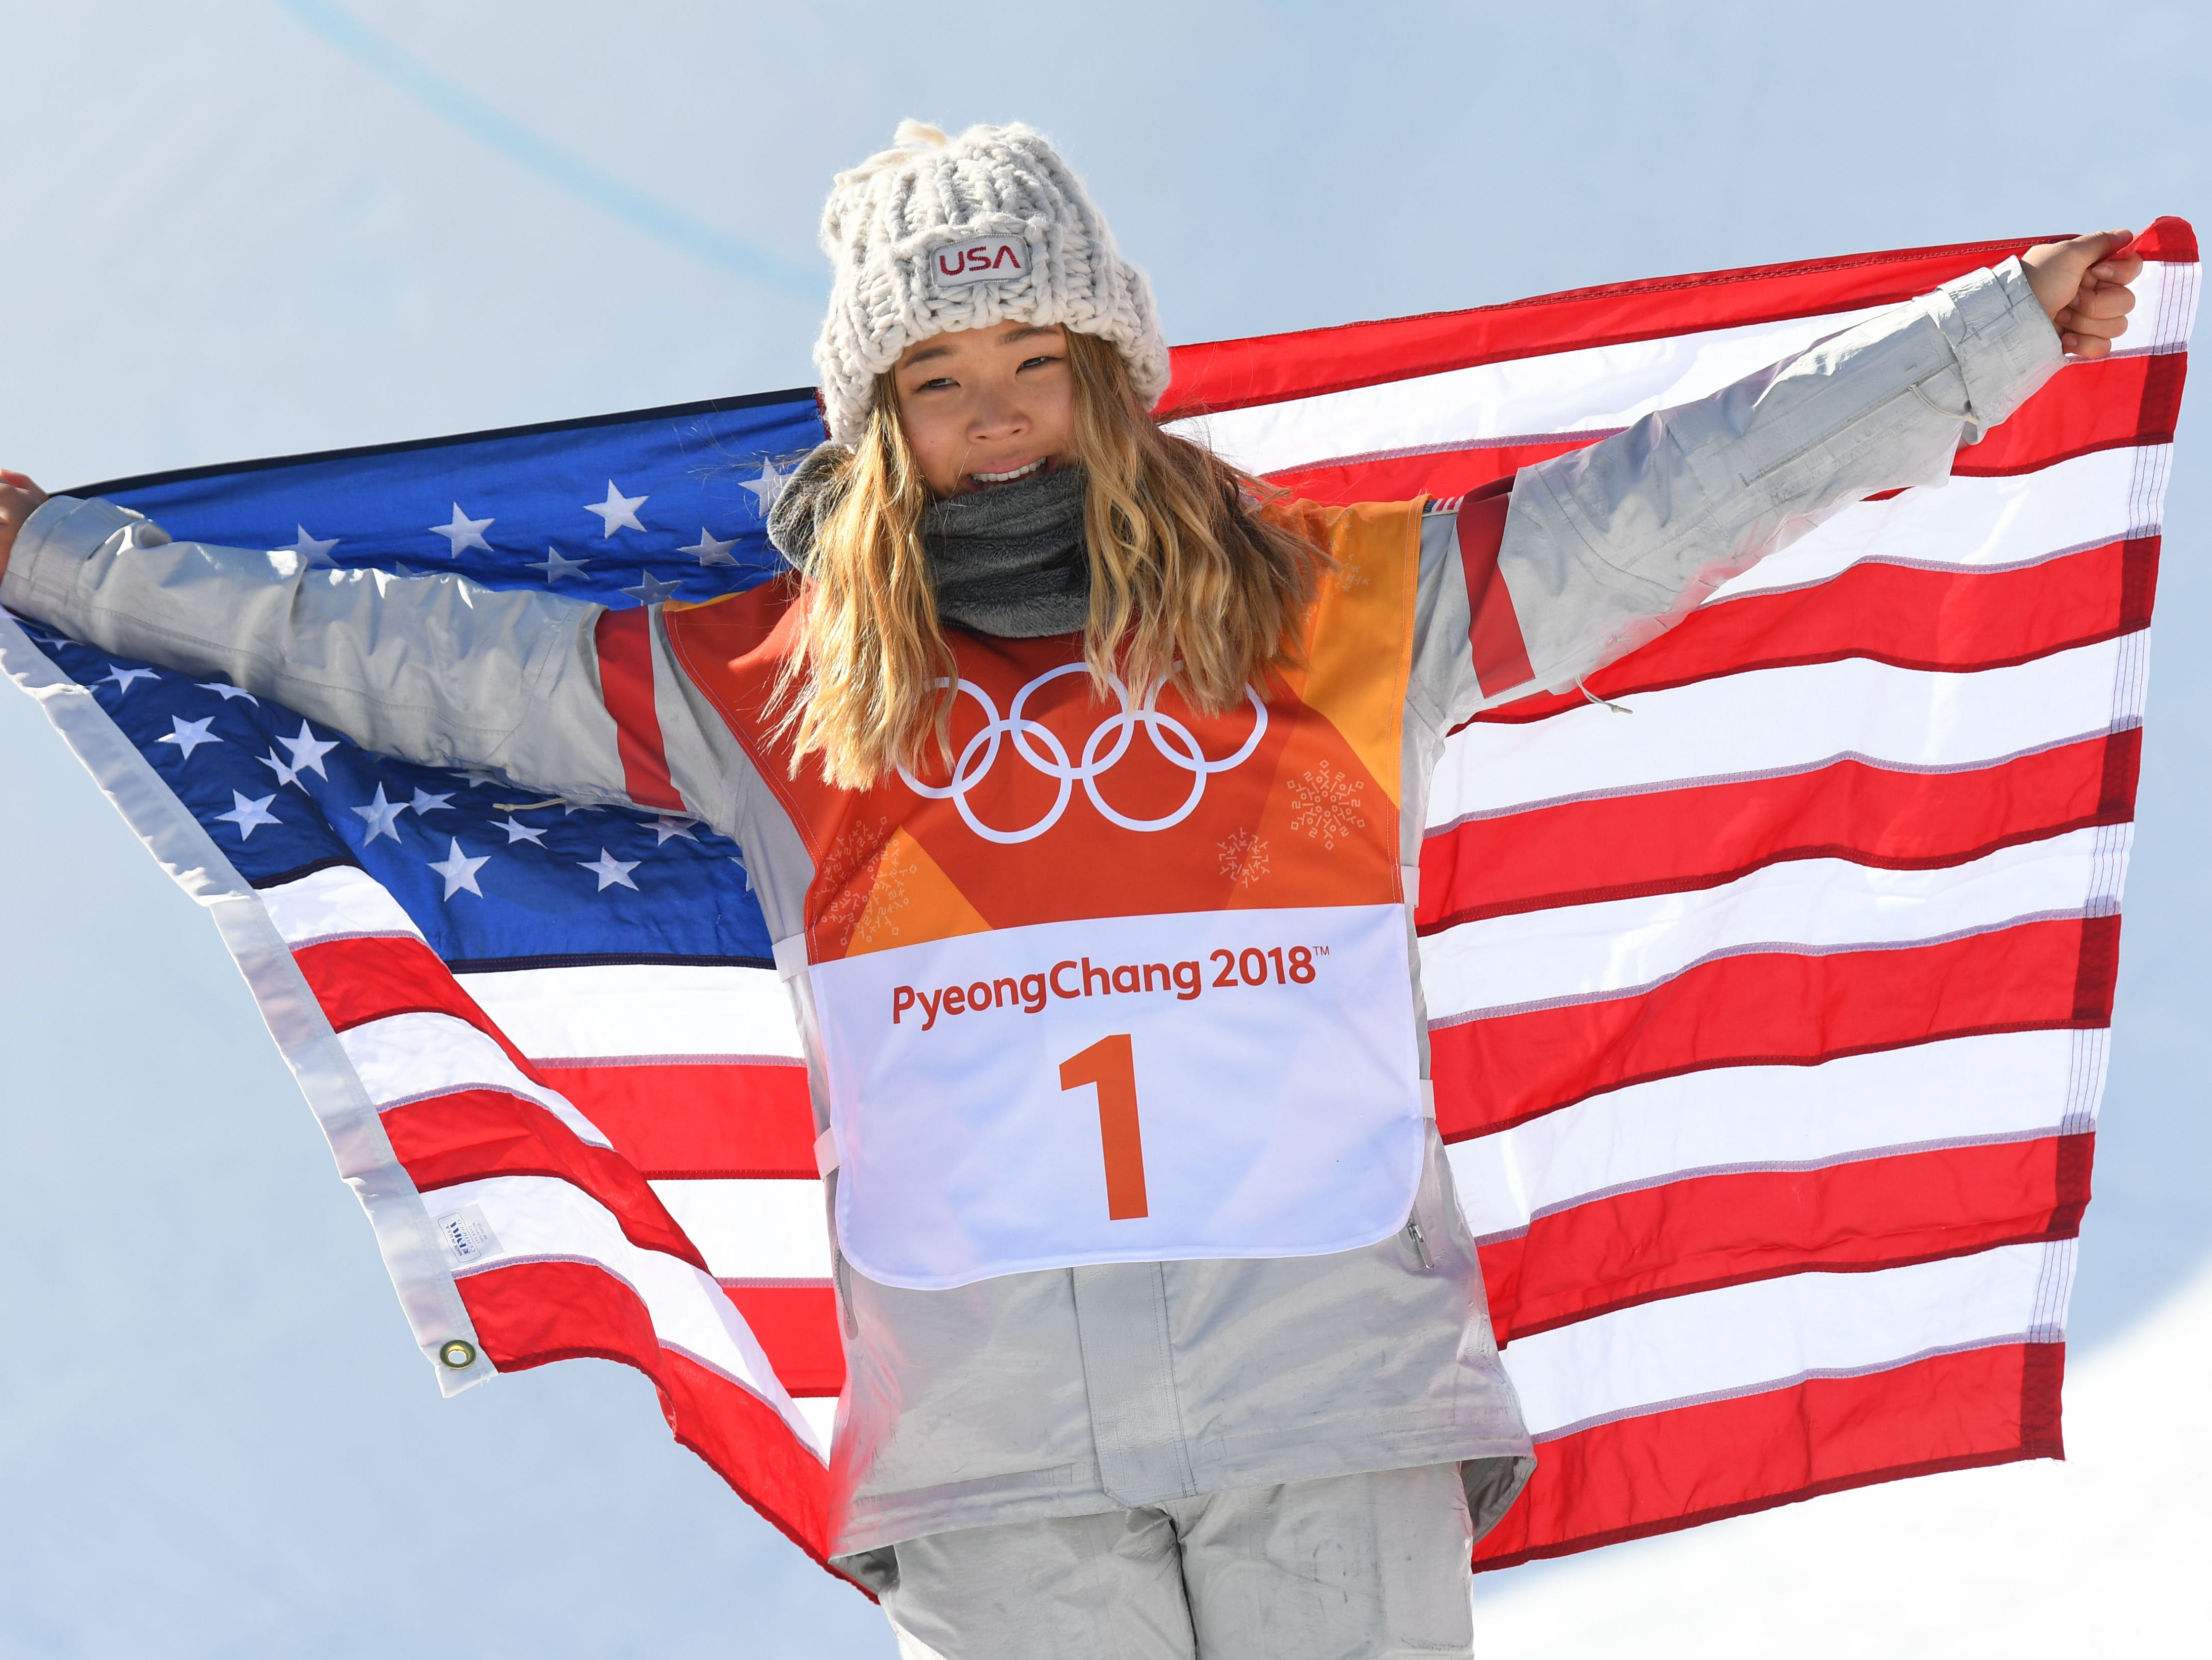 Feb. 13: Chloe Kim (USA) celebrates after winning gold in the halfpipe event during the Pyeongchang Winter Games.